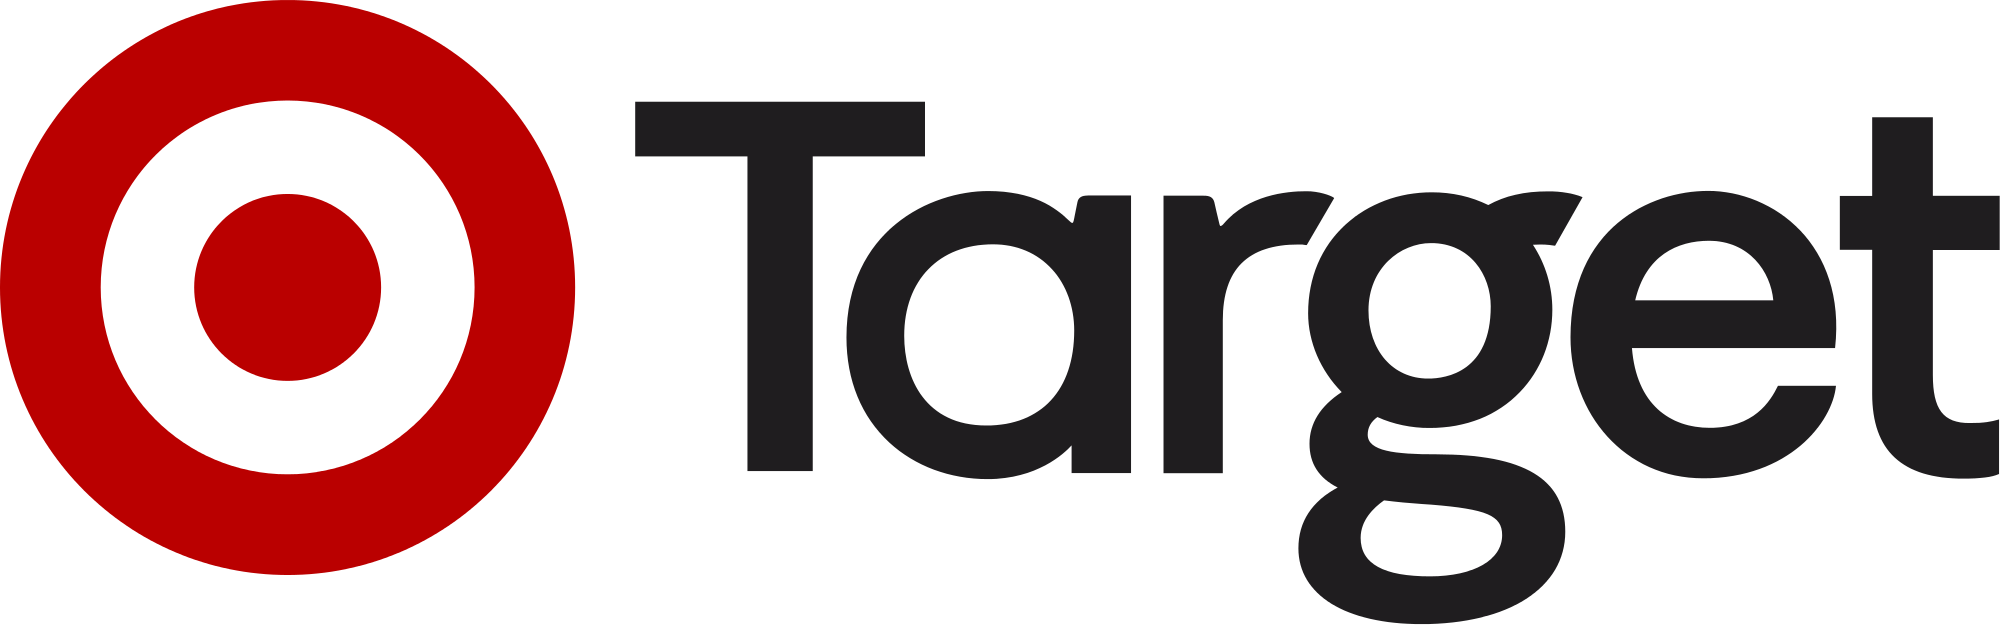 Target logo png. File svg wikimedia commons